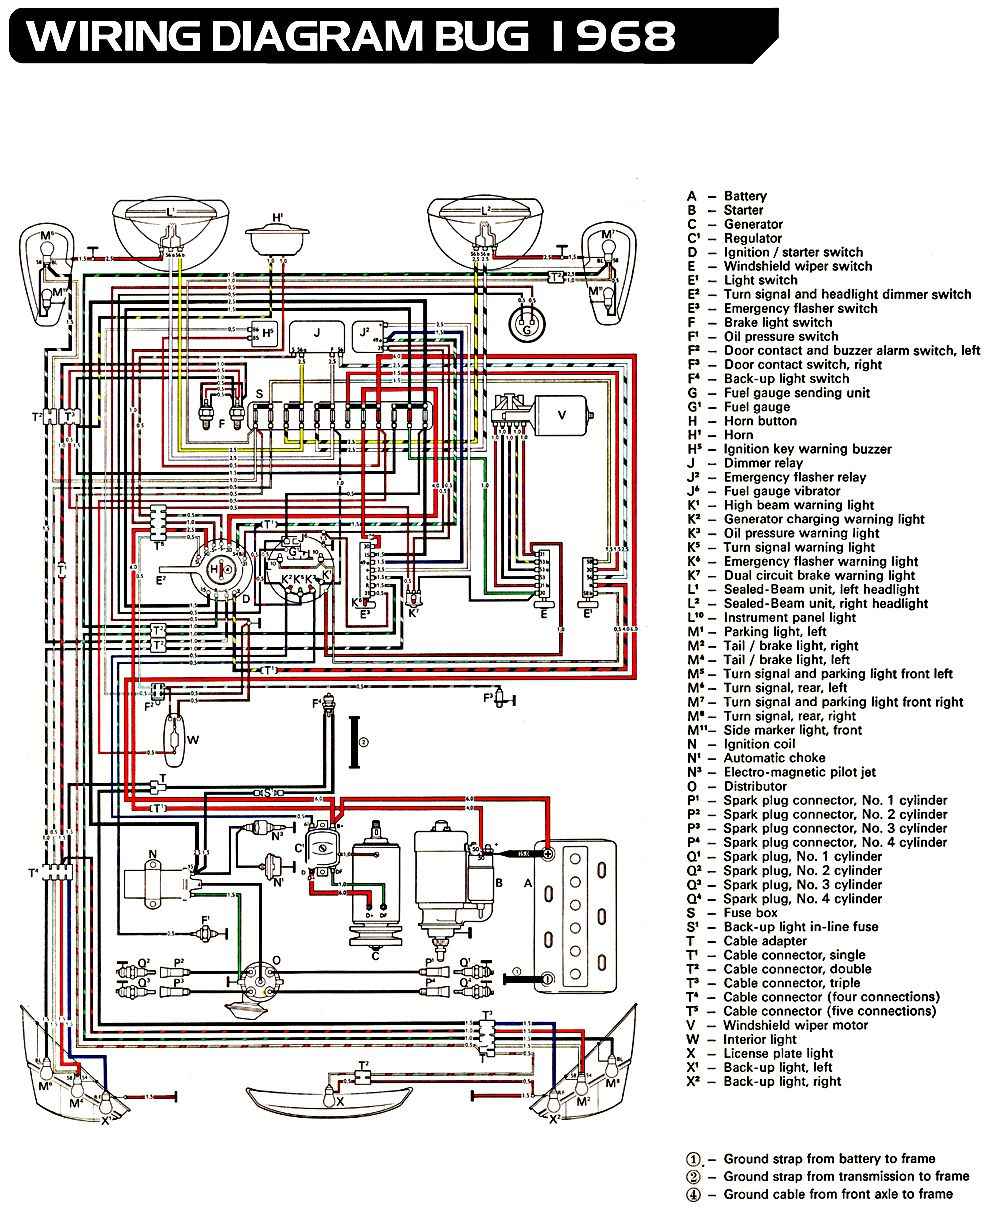 3a1908112d3826270ed5e3be362292bf vw bug ignition wiring diagram 73 vw wiring diagram free 1973 vw super beetle wiring harness at crackthecode.co